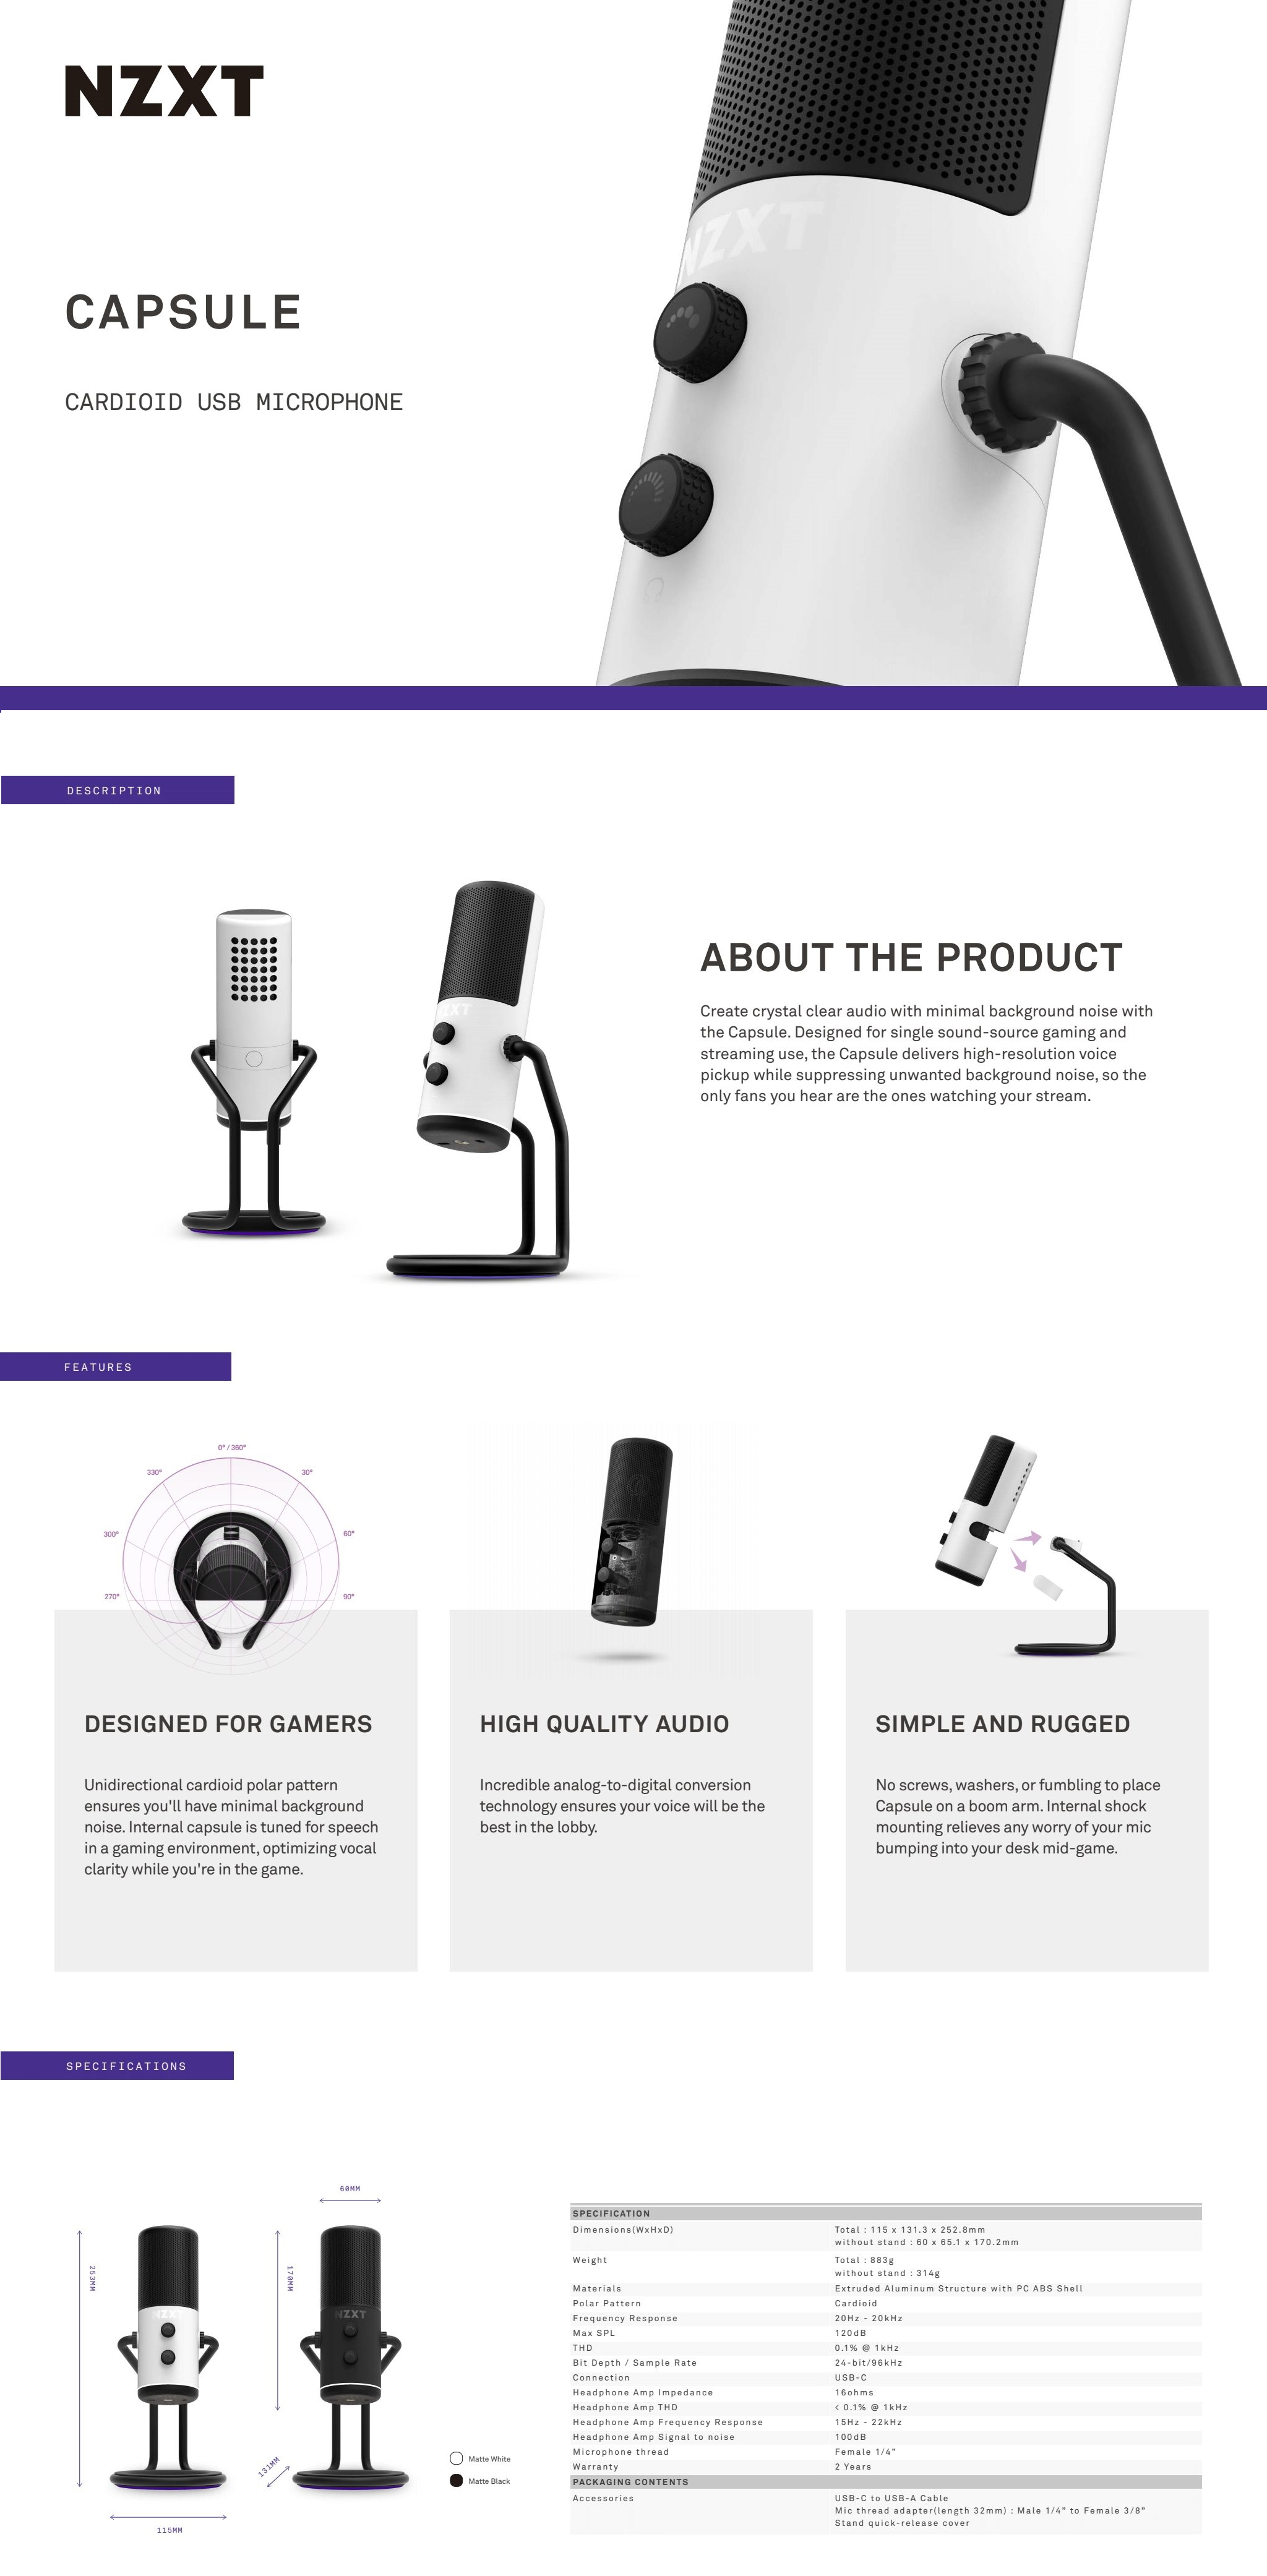 A large marketing image providing additional information about the product NZXT Capsule Wired USB Cardioid Microphone - White - Additional alt info not provided